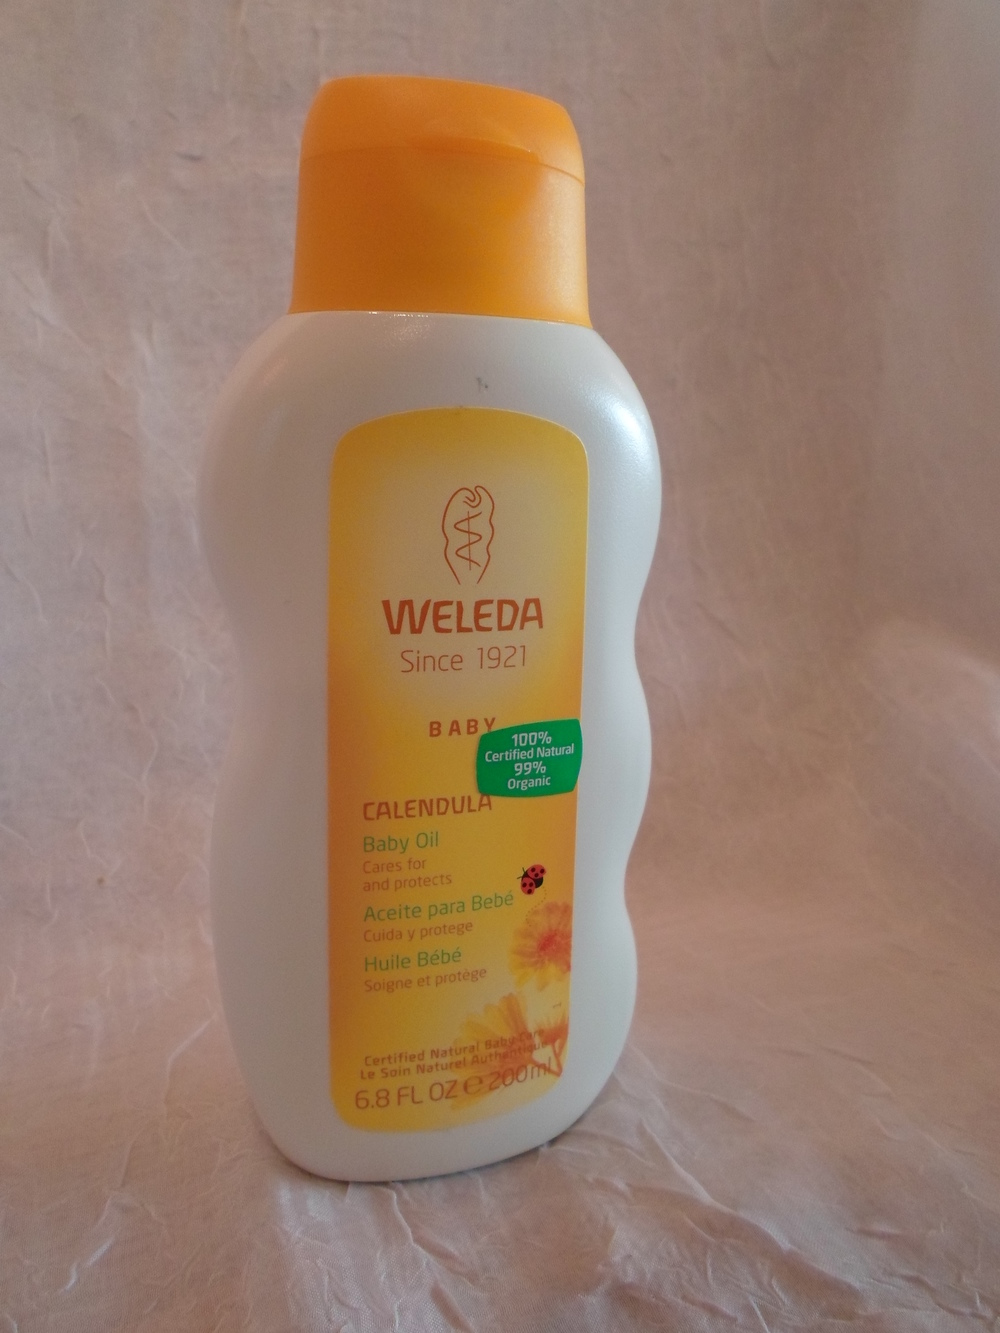 Weleda Calendula Baby Oil $19.95 Wants 1